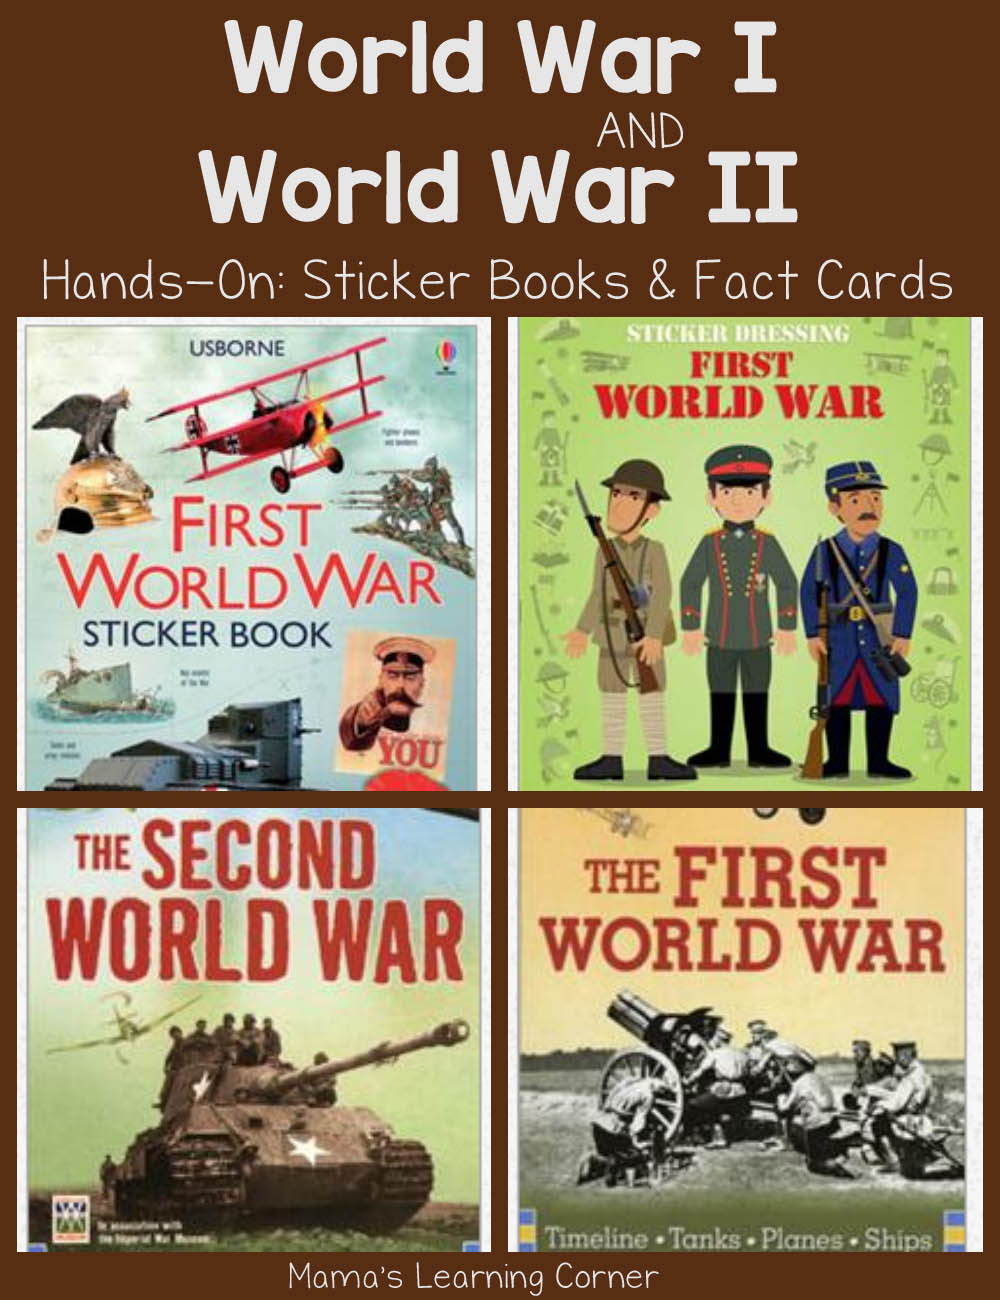 World War I and World War II Hands-on Resources: Sticker Books and Fact Cards